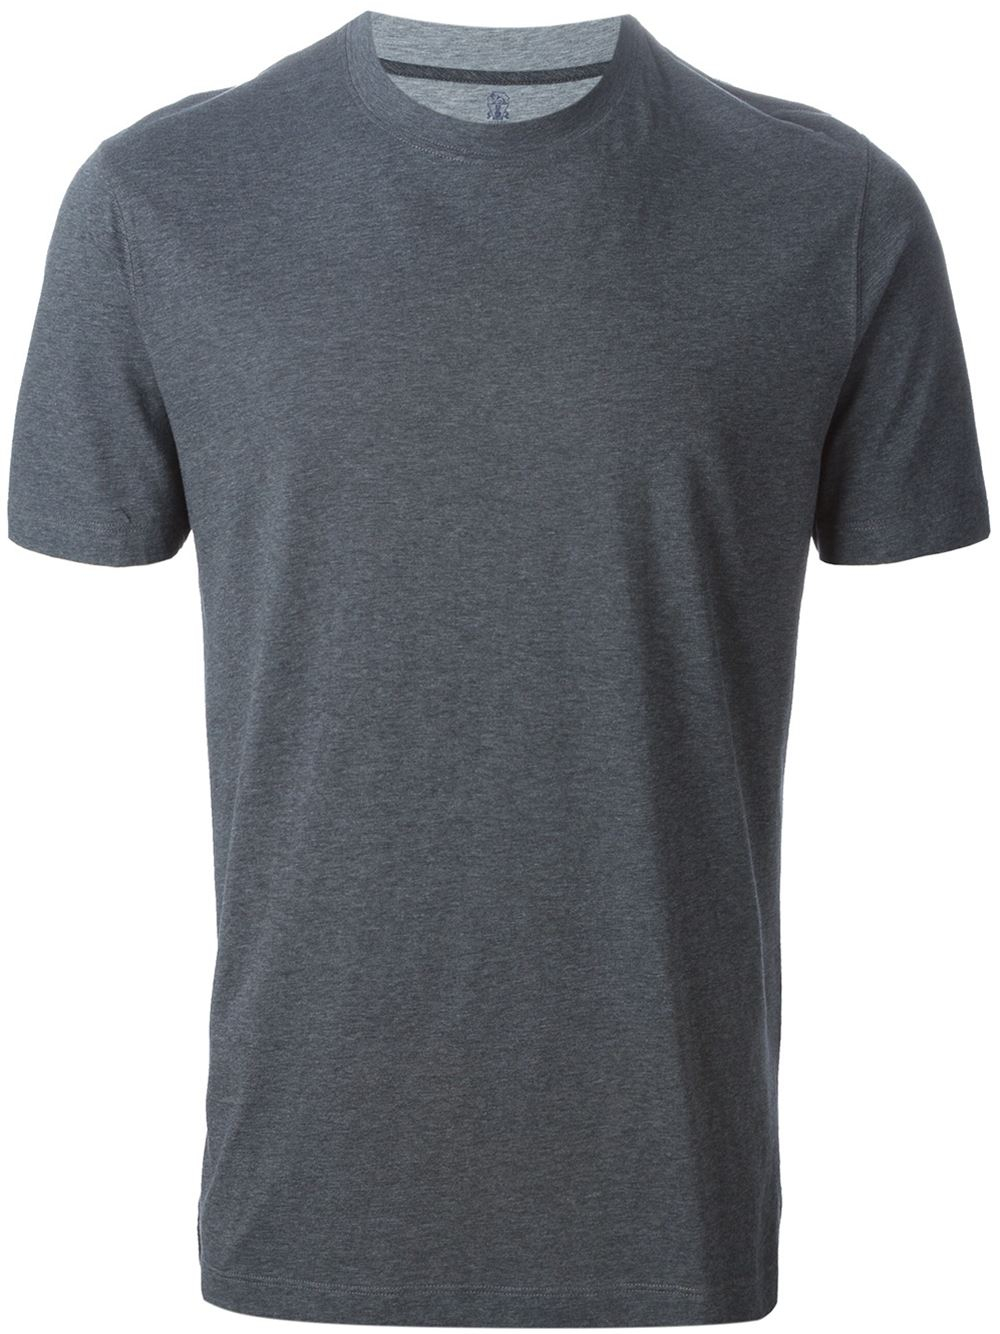 Cheap Authentic 100% Original Cheap Price Polo shirt grey Brunello Cucinelli Extremely Browse ZLY14Kt3